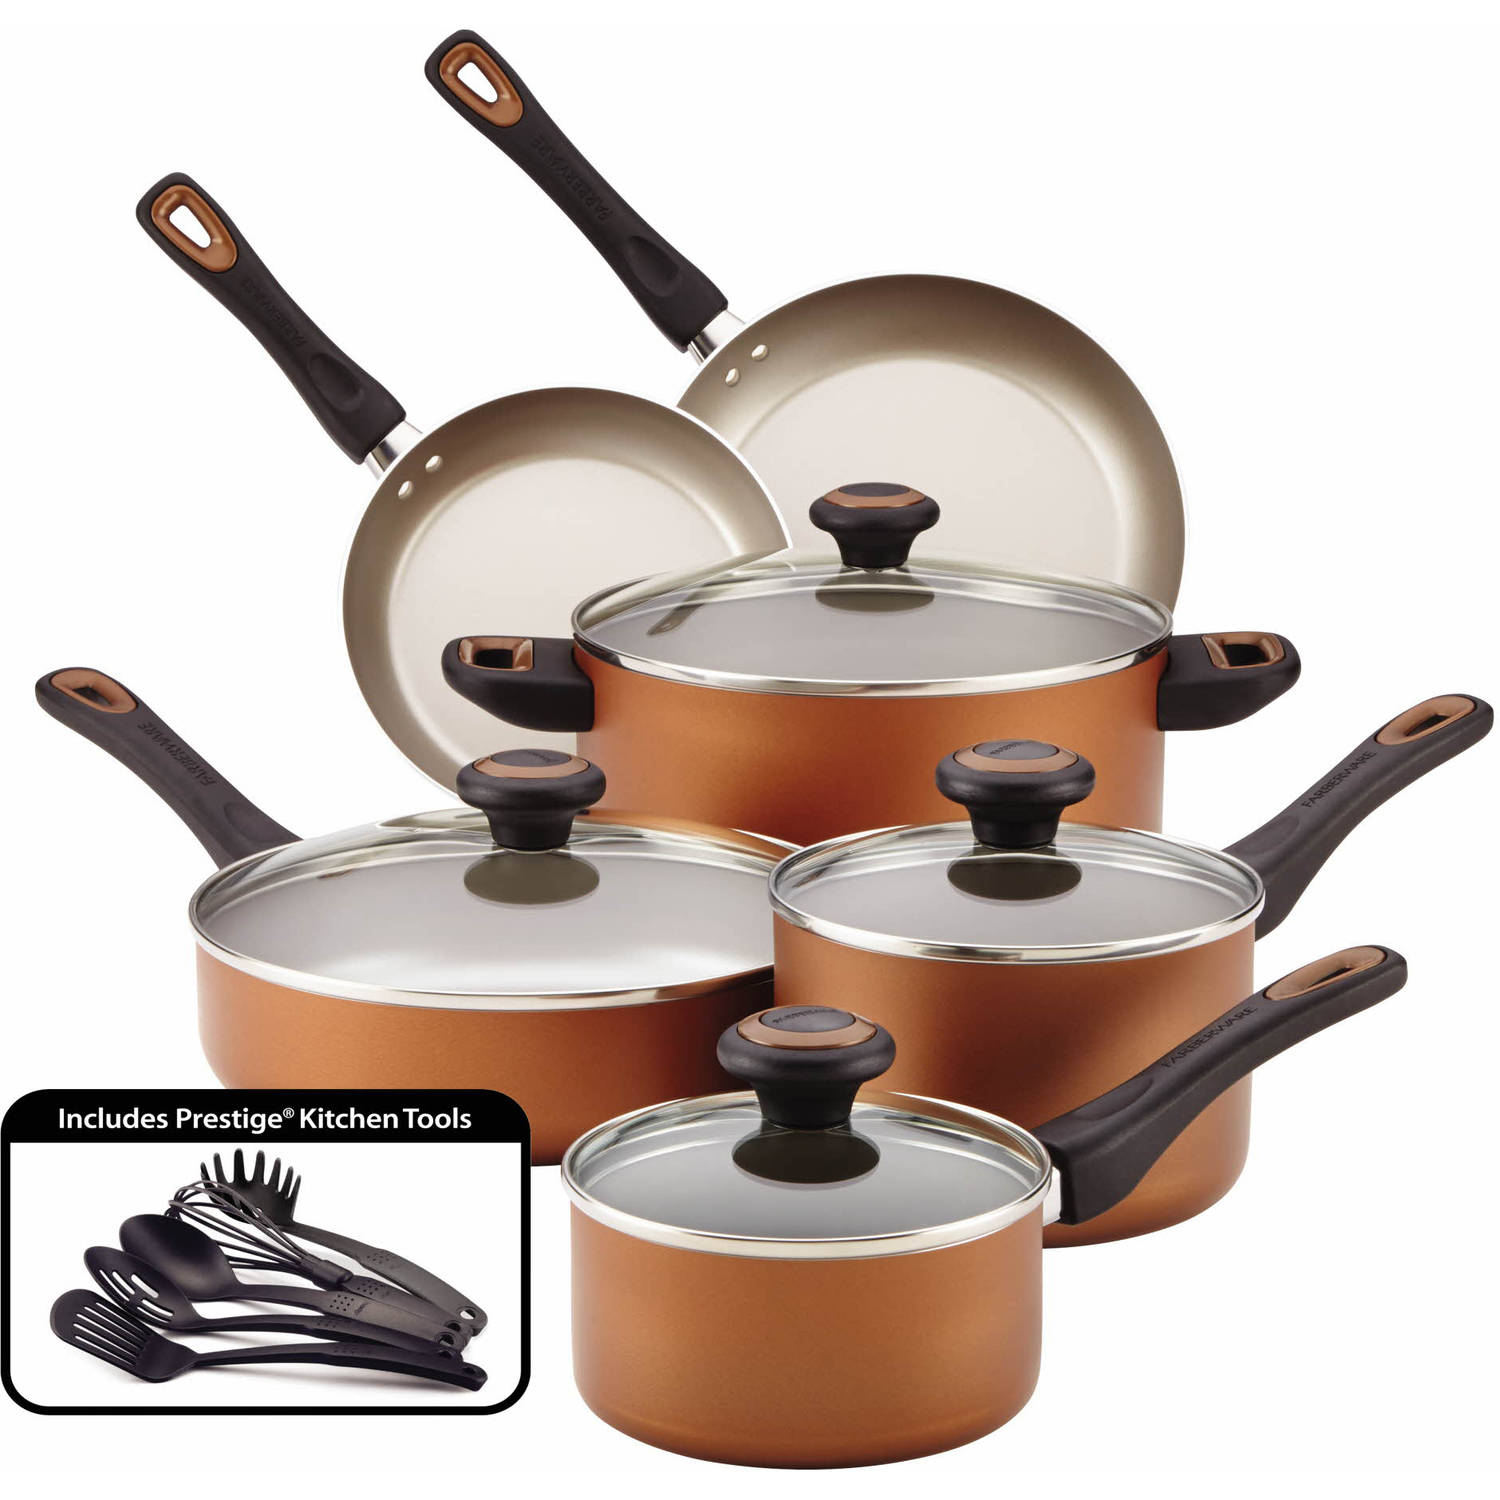 Farberware High-Performance Nonstick 15-Piece Cookware Set, Copper